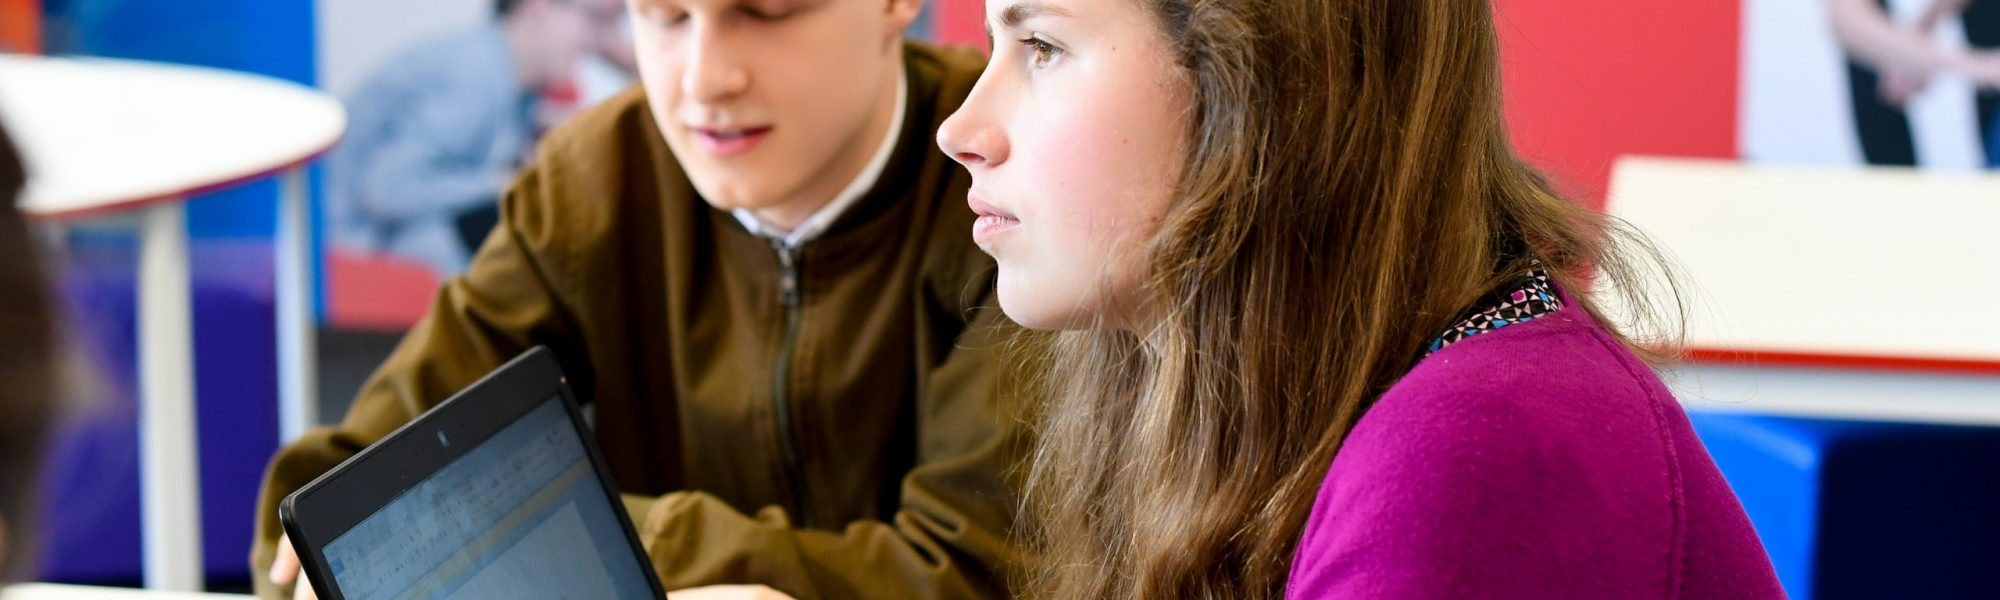 Students - Freya and Luke